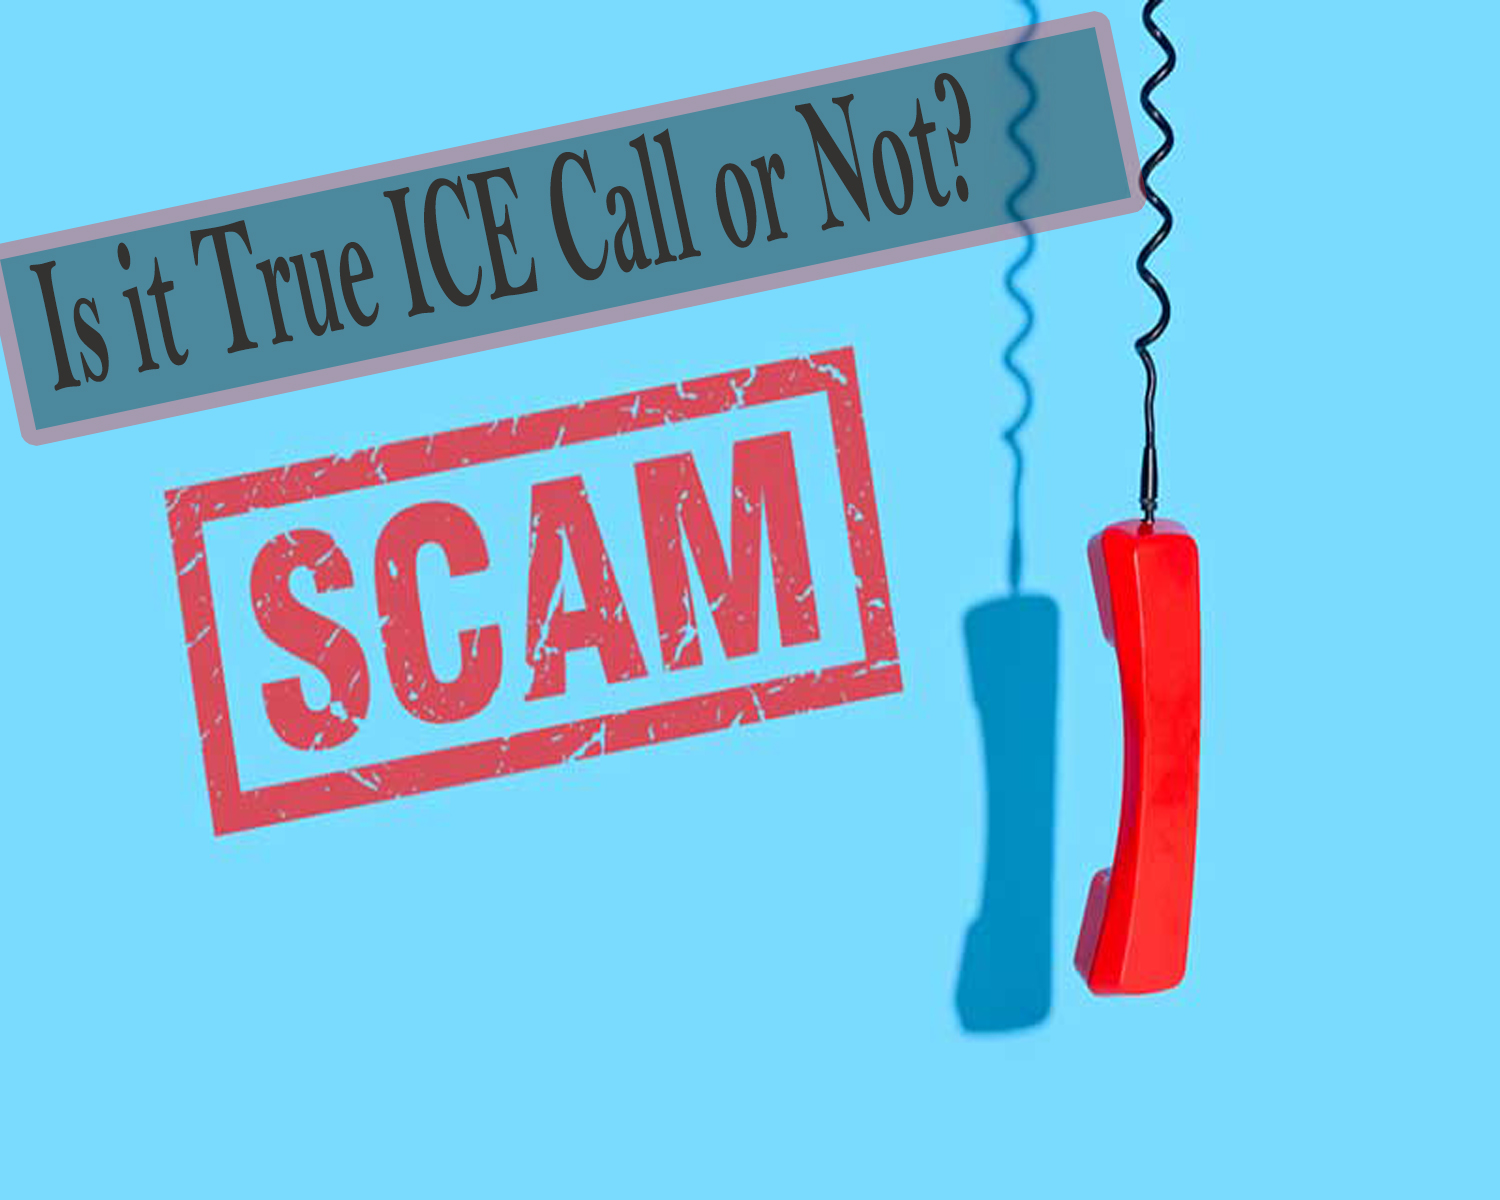 Scam Alert: Fake ICE Agents Calling to Solicit Money, Threaten Deportation